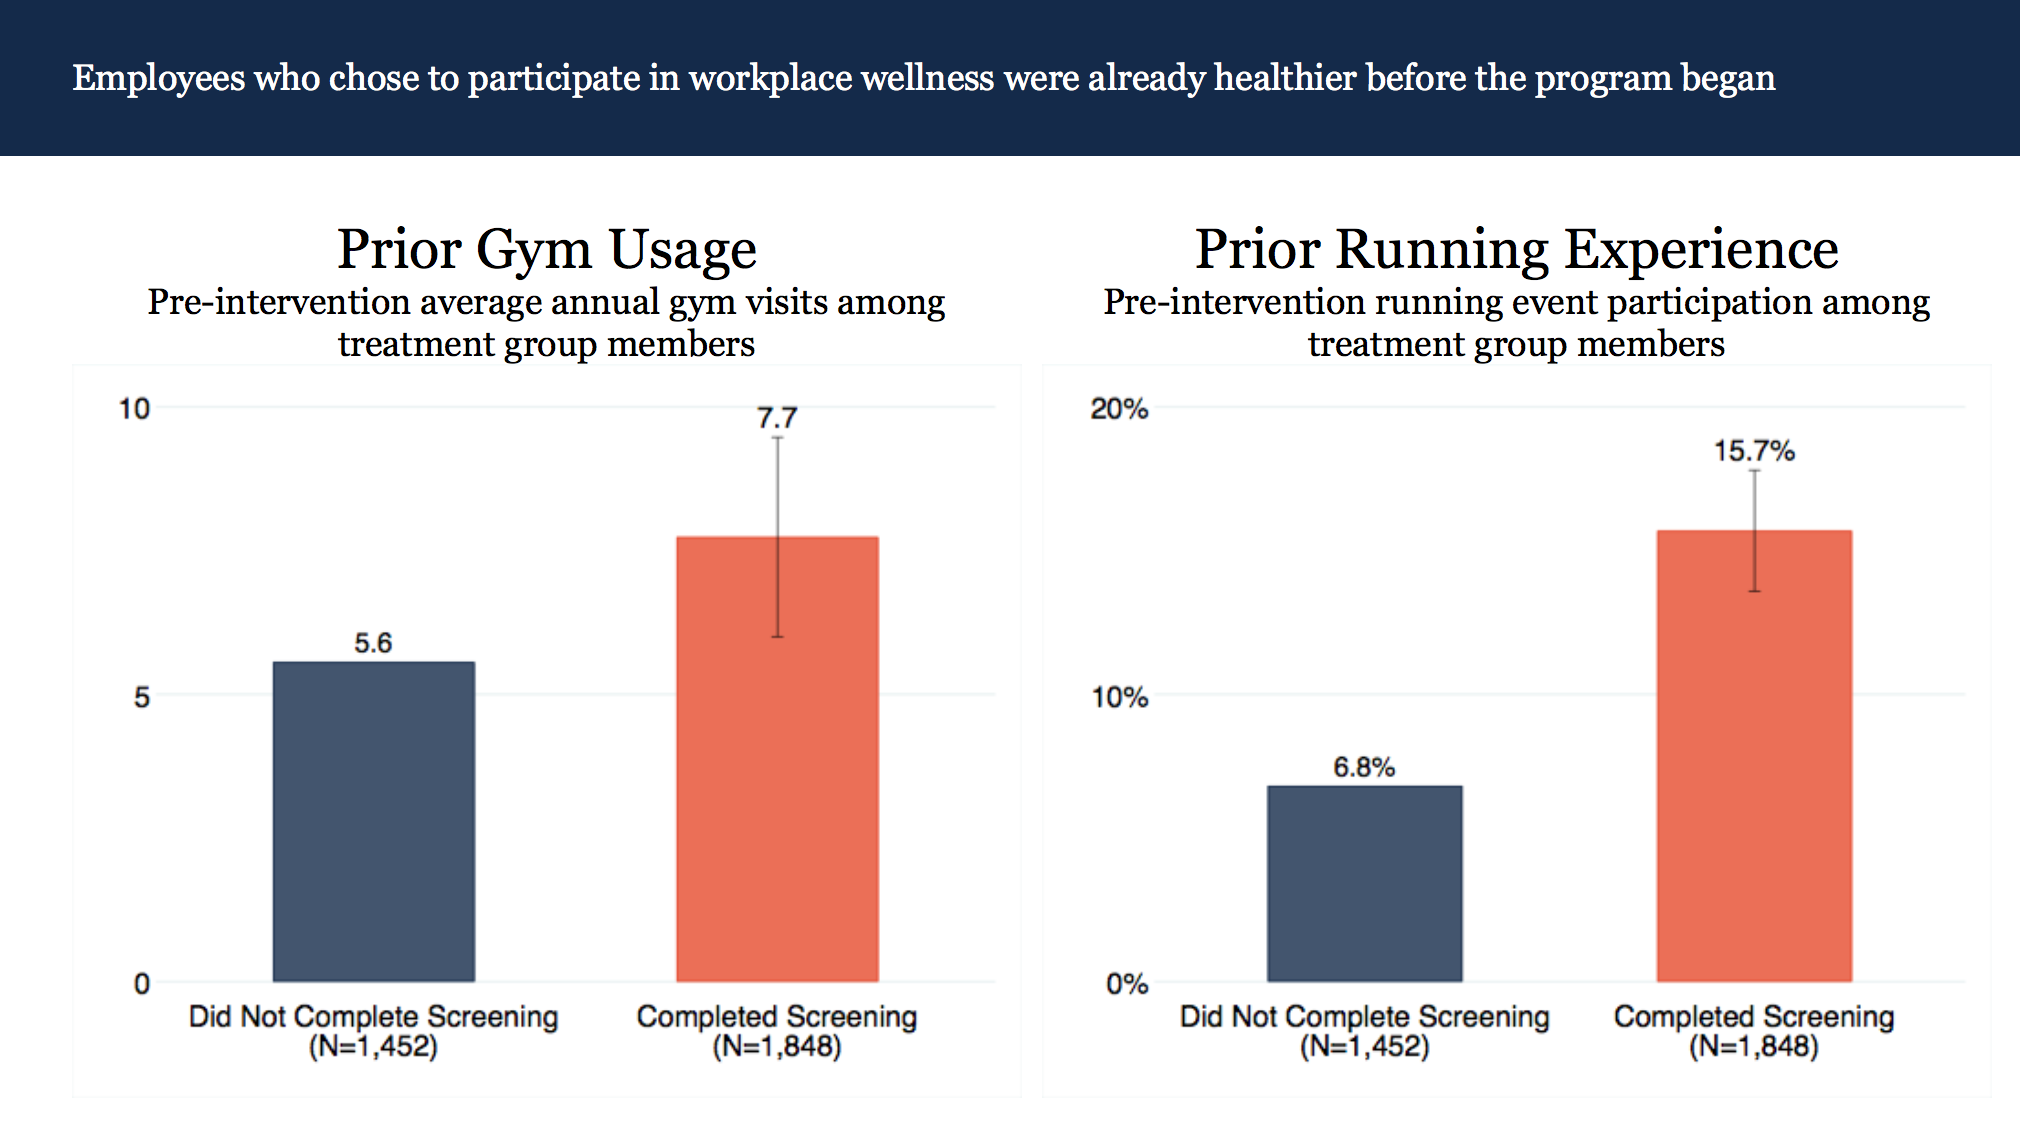 AVERAGE HEALTHCARE SPENDERS MORE LIKELY TO PARTICIPATE IN WELLNESS PROGRAMS